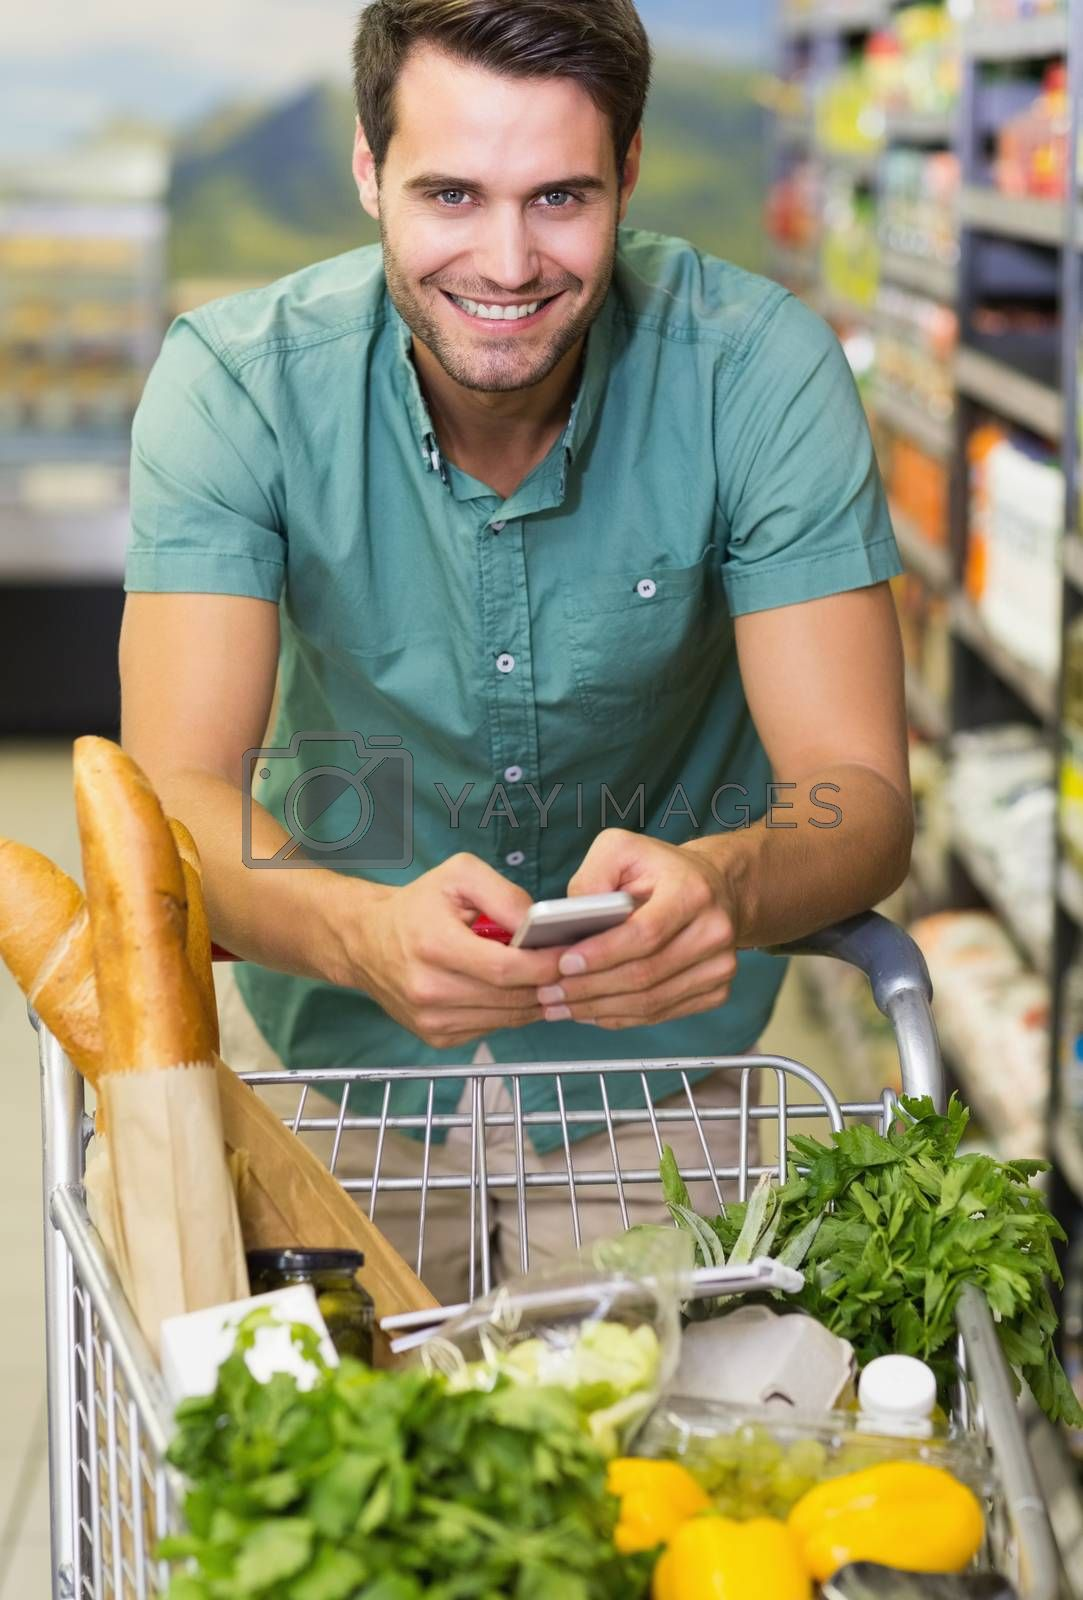 Royalty free image of Portrait of smiling man buy a food and using his smartphone  by Wavebreakmedia